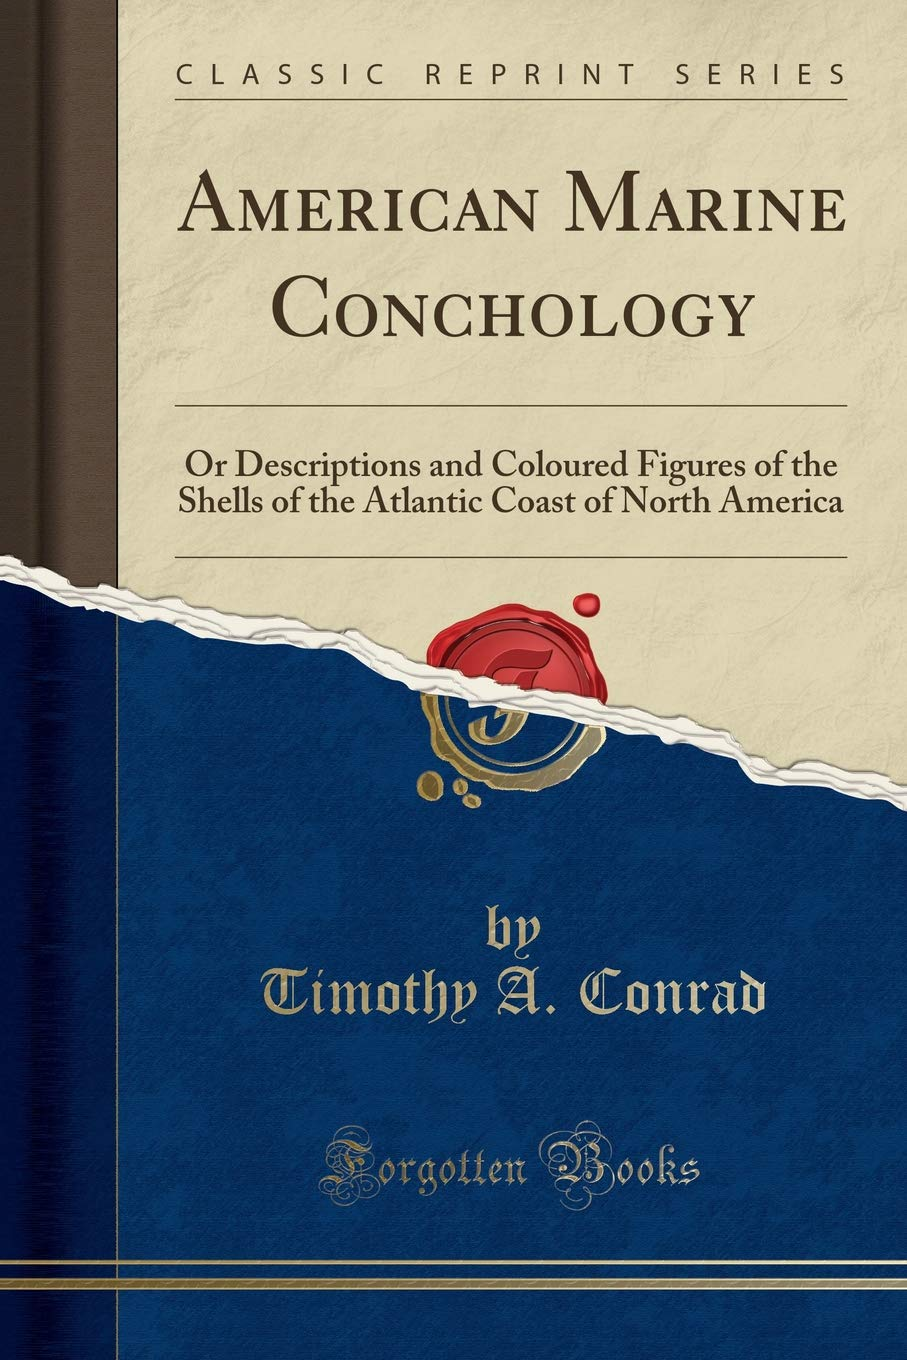 Read Online American Marine Conchology: Or Descriptions and Coloured Figures of the Shells of the Atlantic Coast of North America (Classic Reprint) ebook